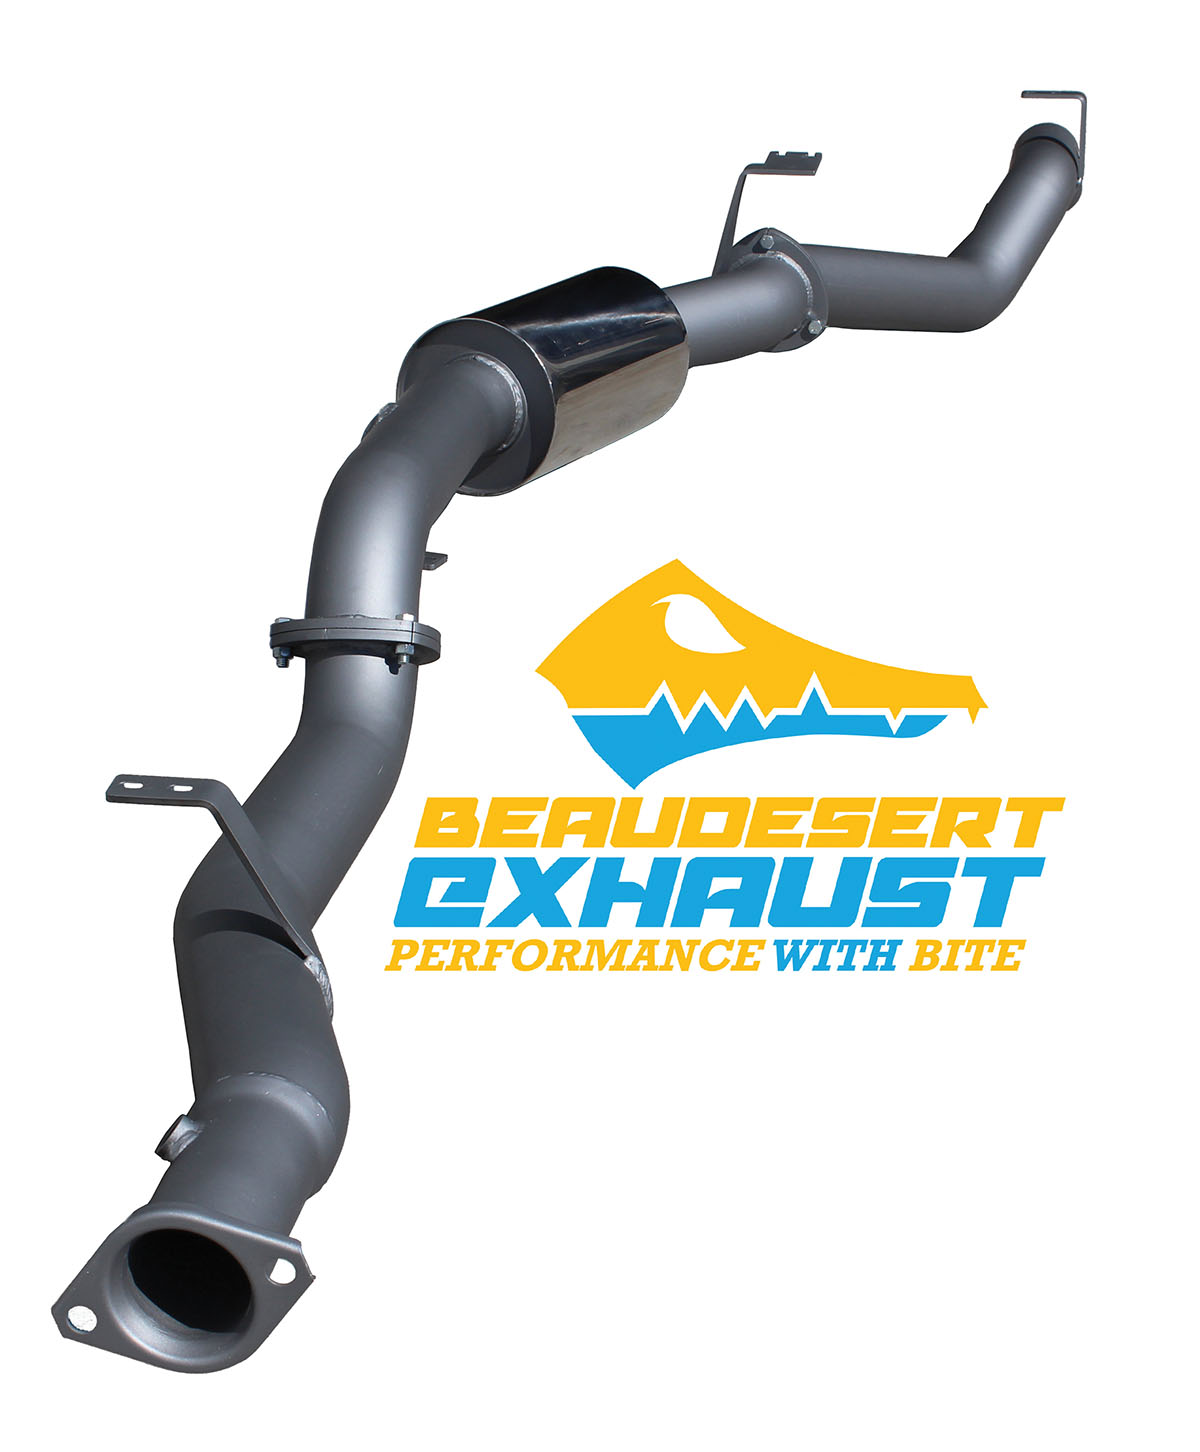 BEAUDESERT EXHAUST ASKS: ARE AFTERMARKET DPF BACK EXHAUSTS USELESS